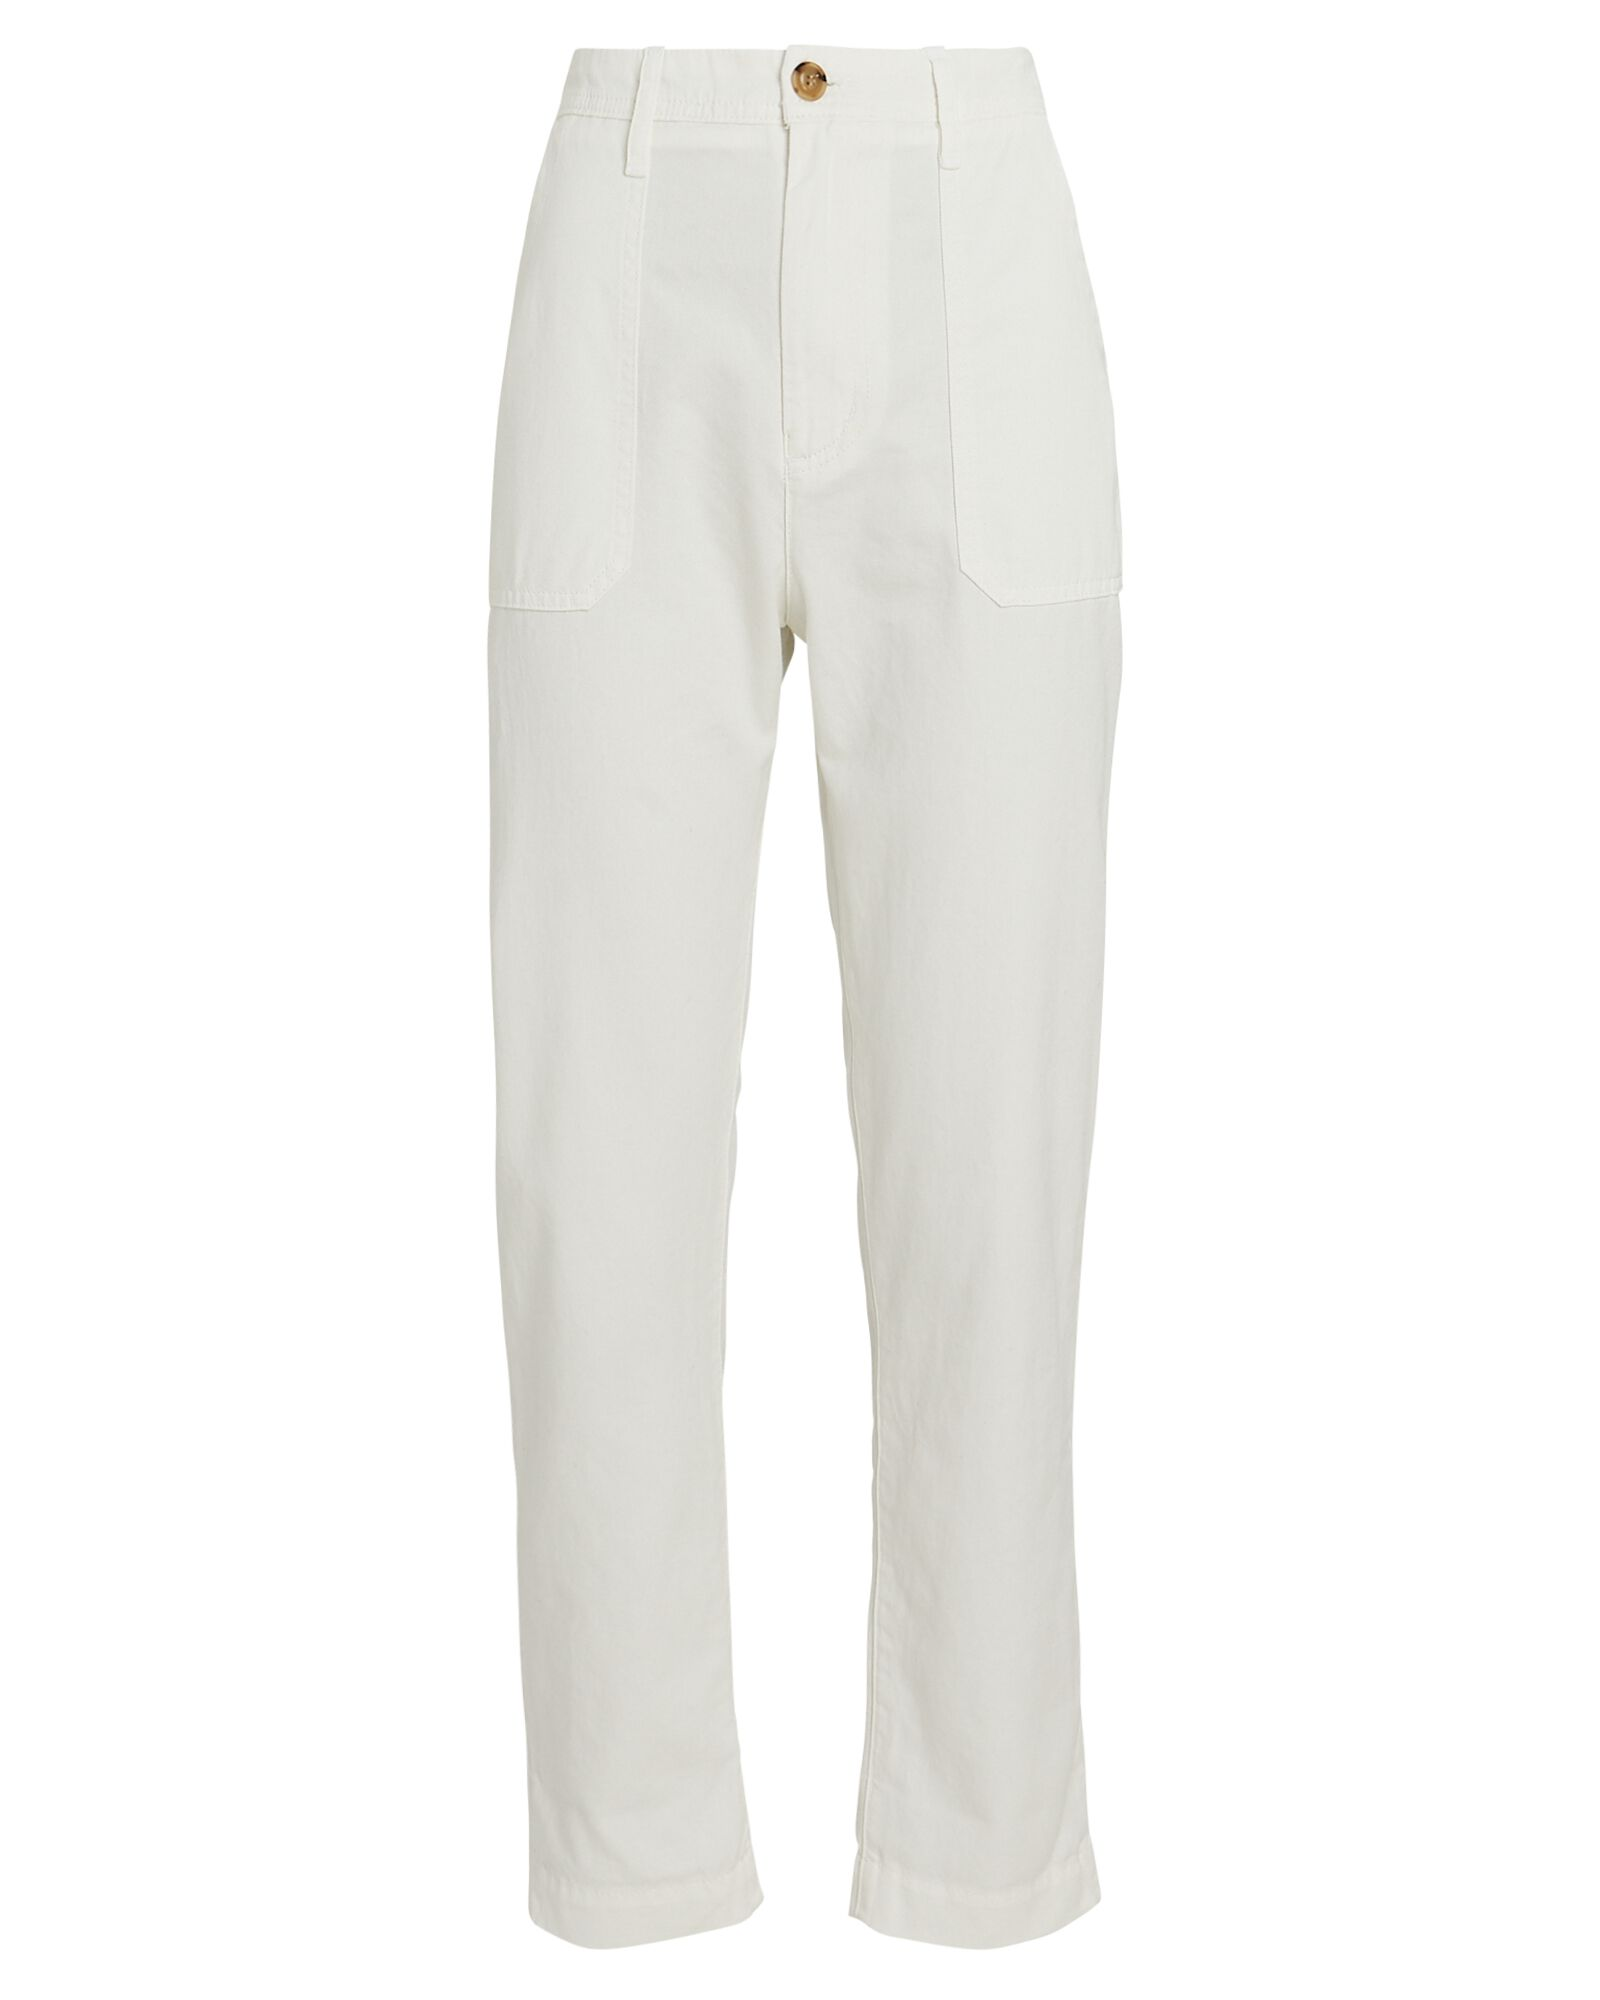 Tucker Cotton Twill Pants, WHITE, hi-res